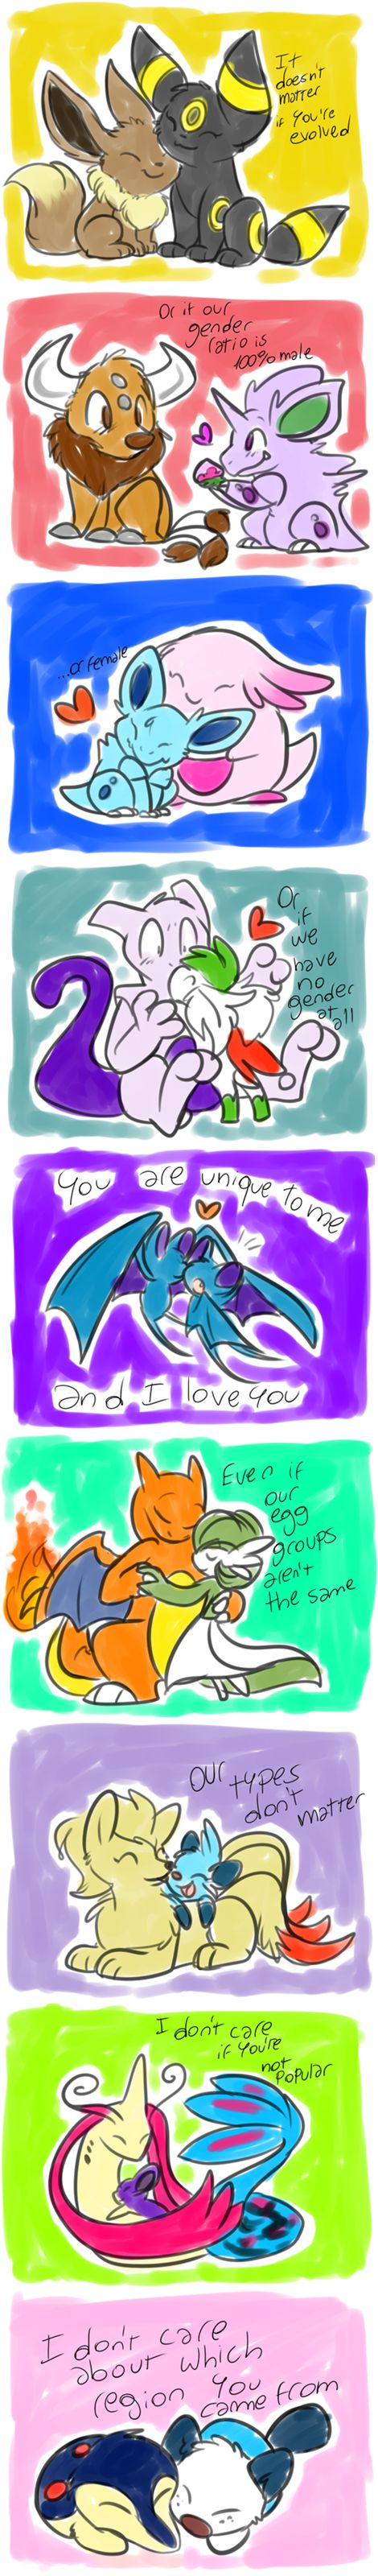 best pokemon way to show that u love them <3333 ~I wish someone did that to me T~T